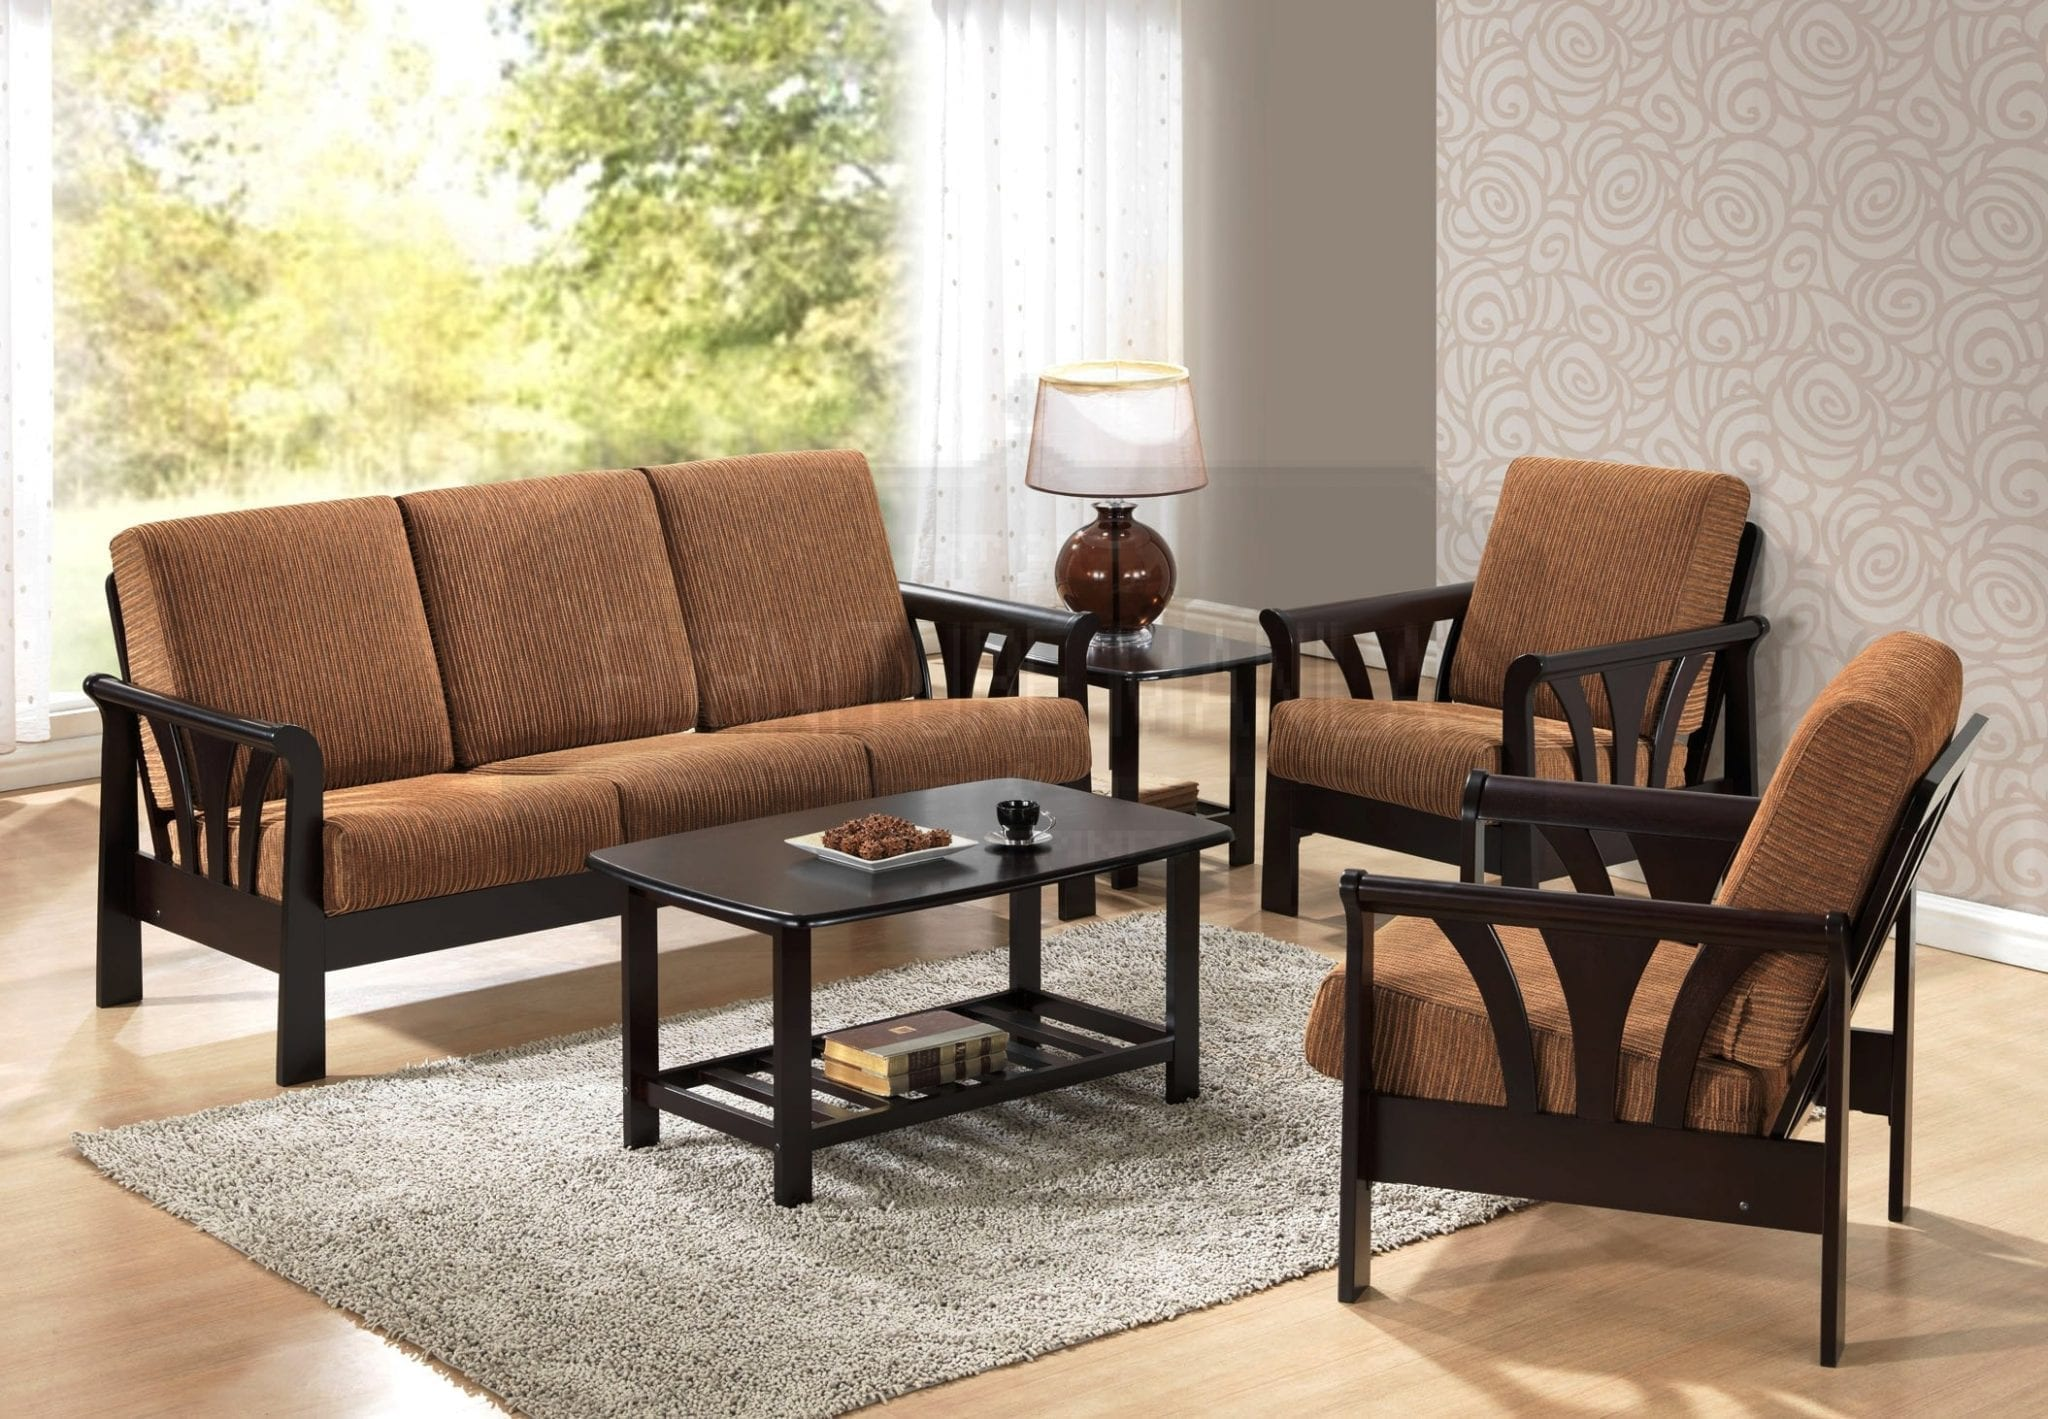 sofa sets cheap malaysia teal sofas yg310 wooden set home and office furniture philippines